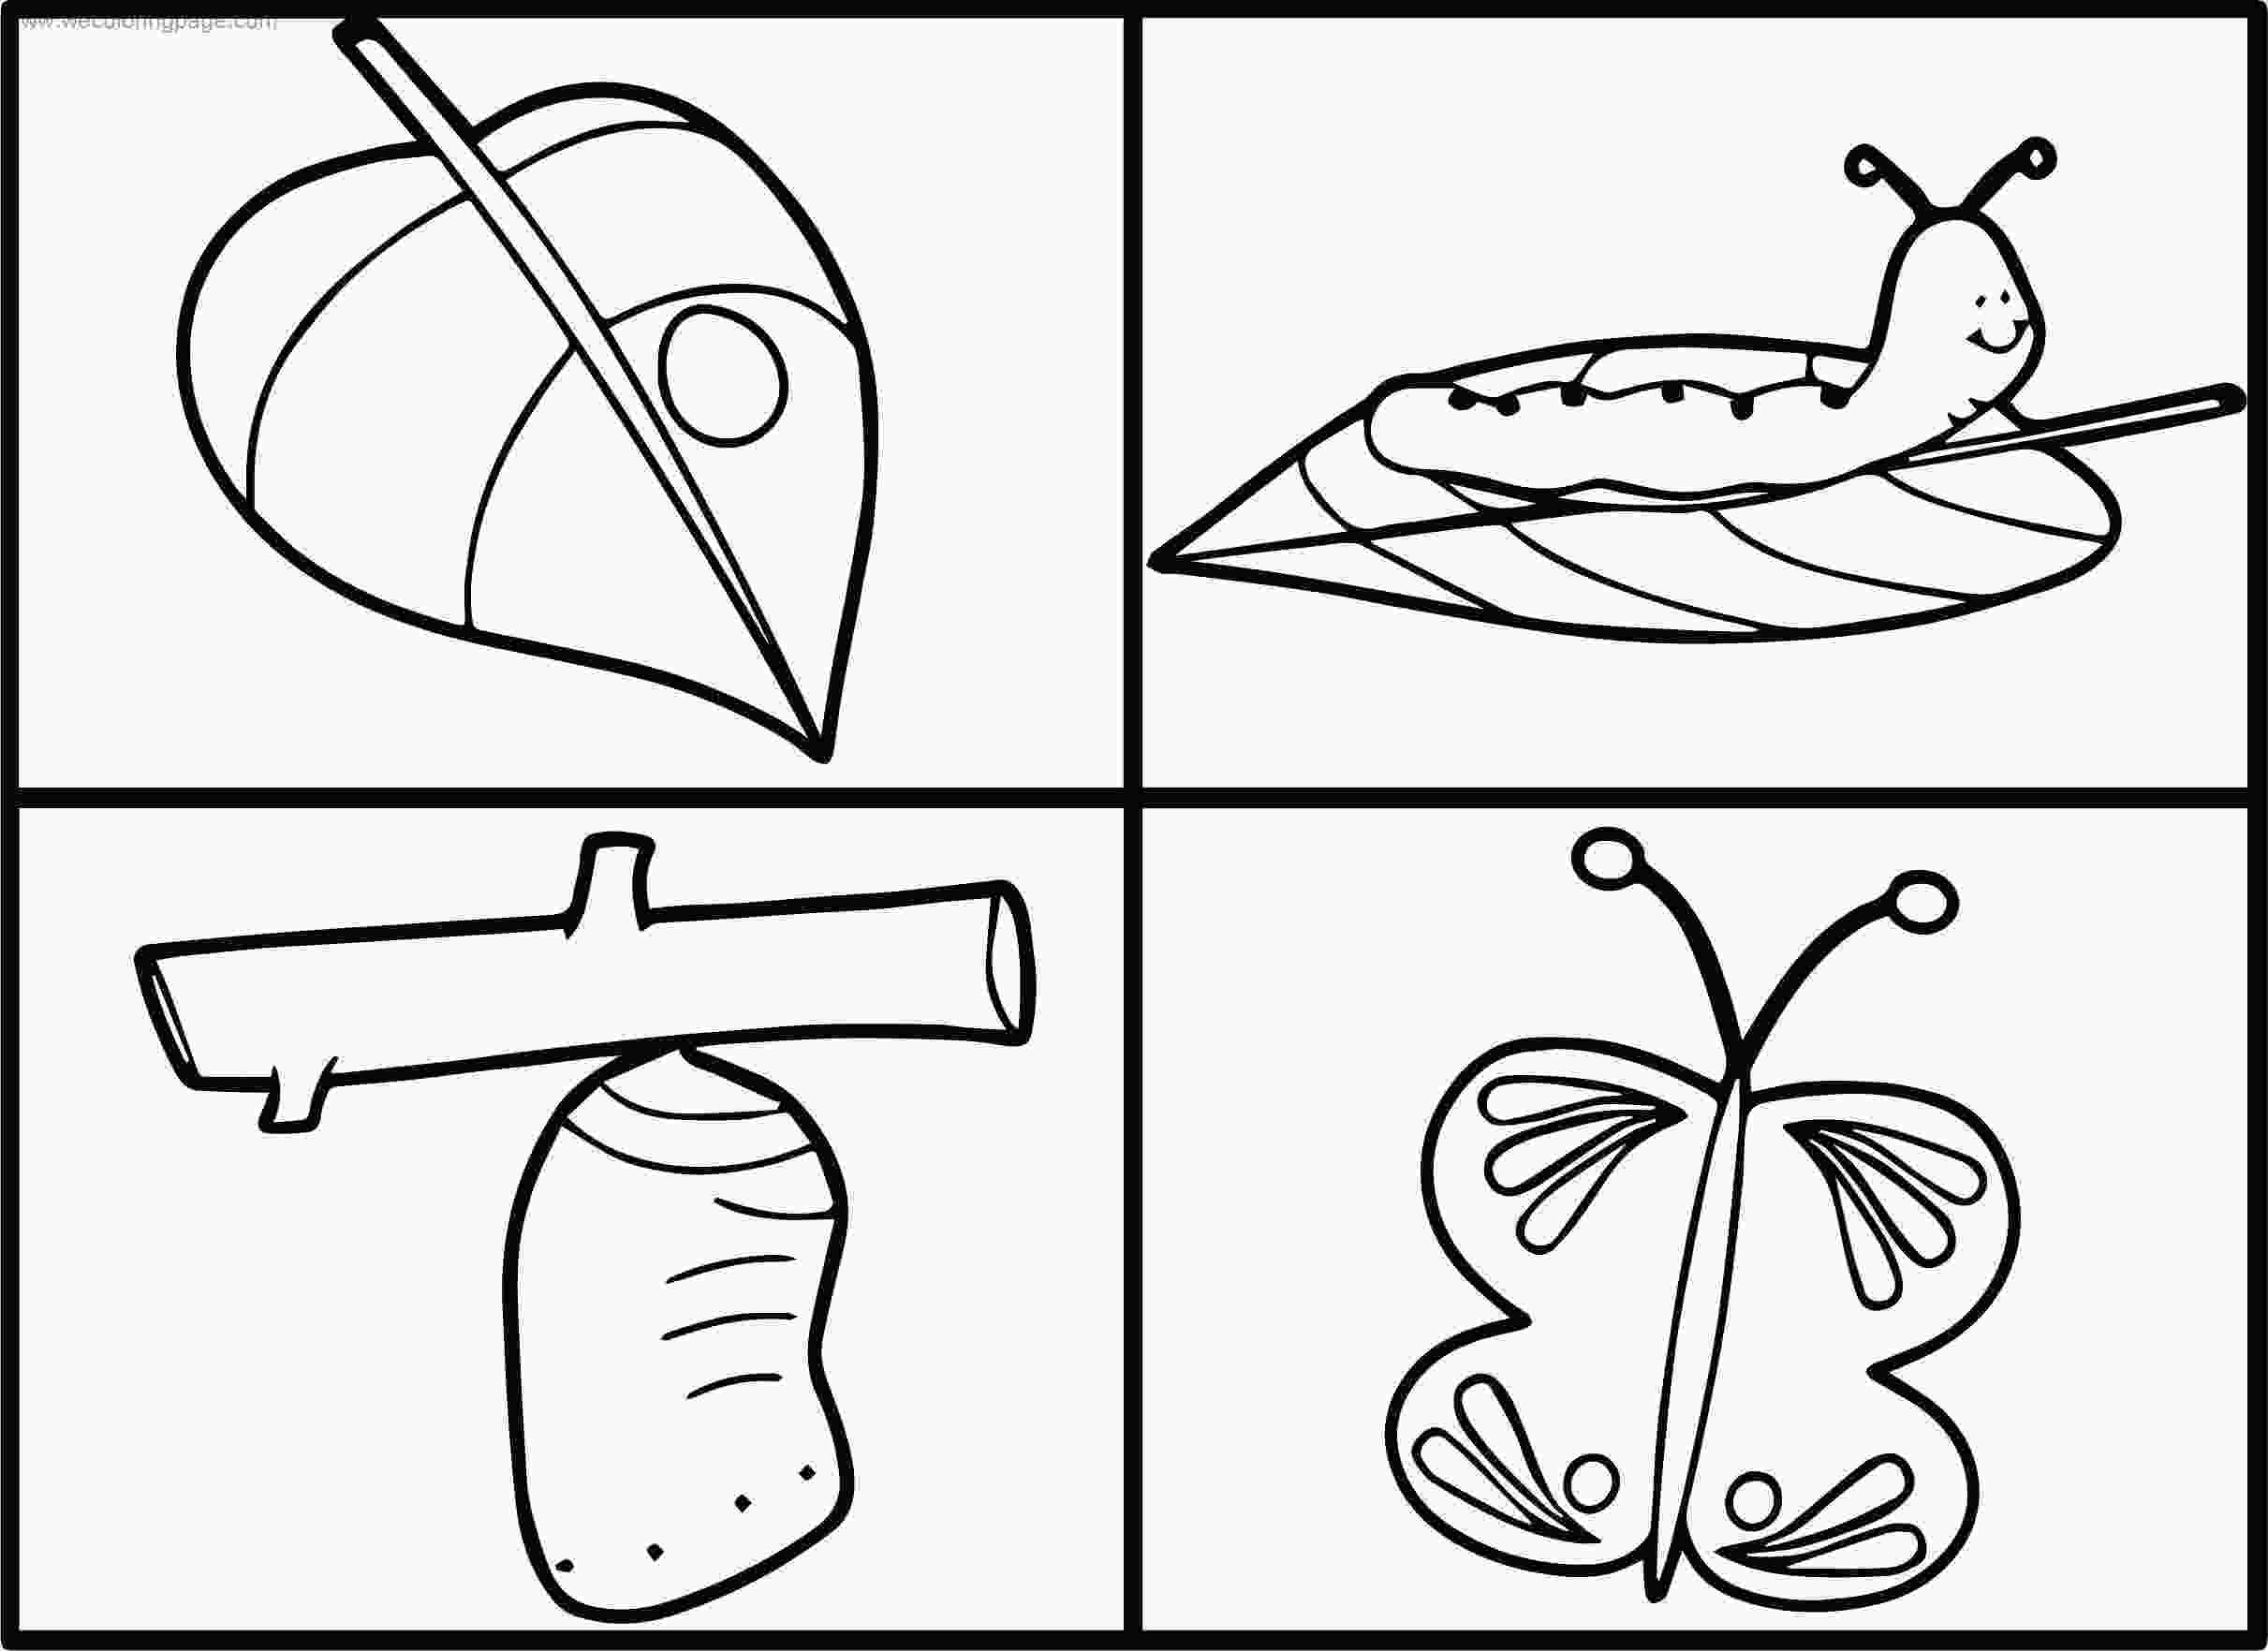 animal life cycle coloring pages life cycle butterfly coloring page wecoloringpagecom